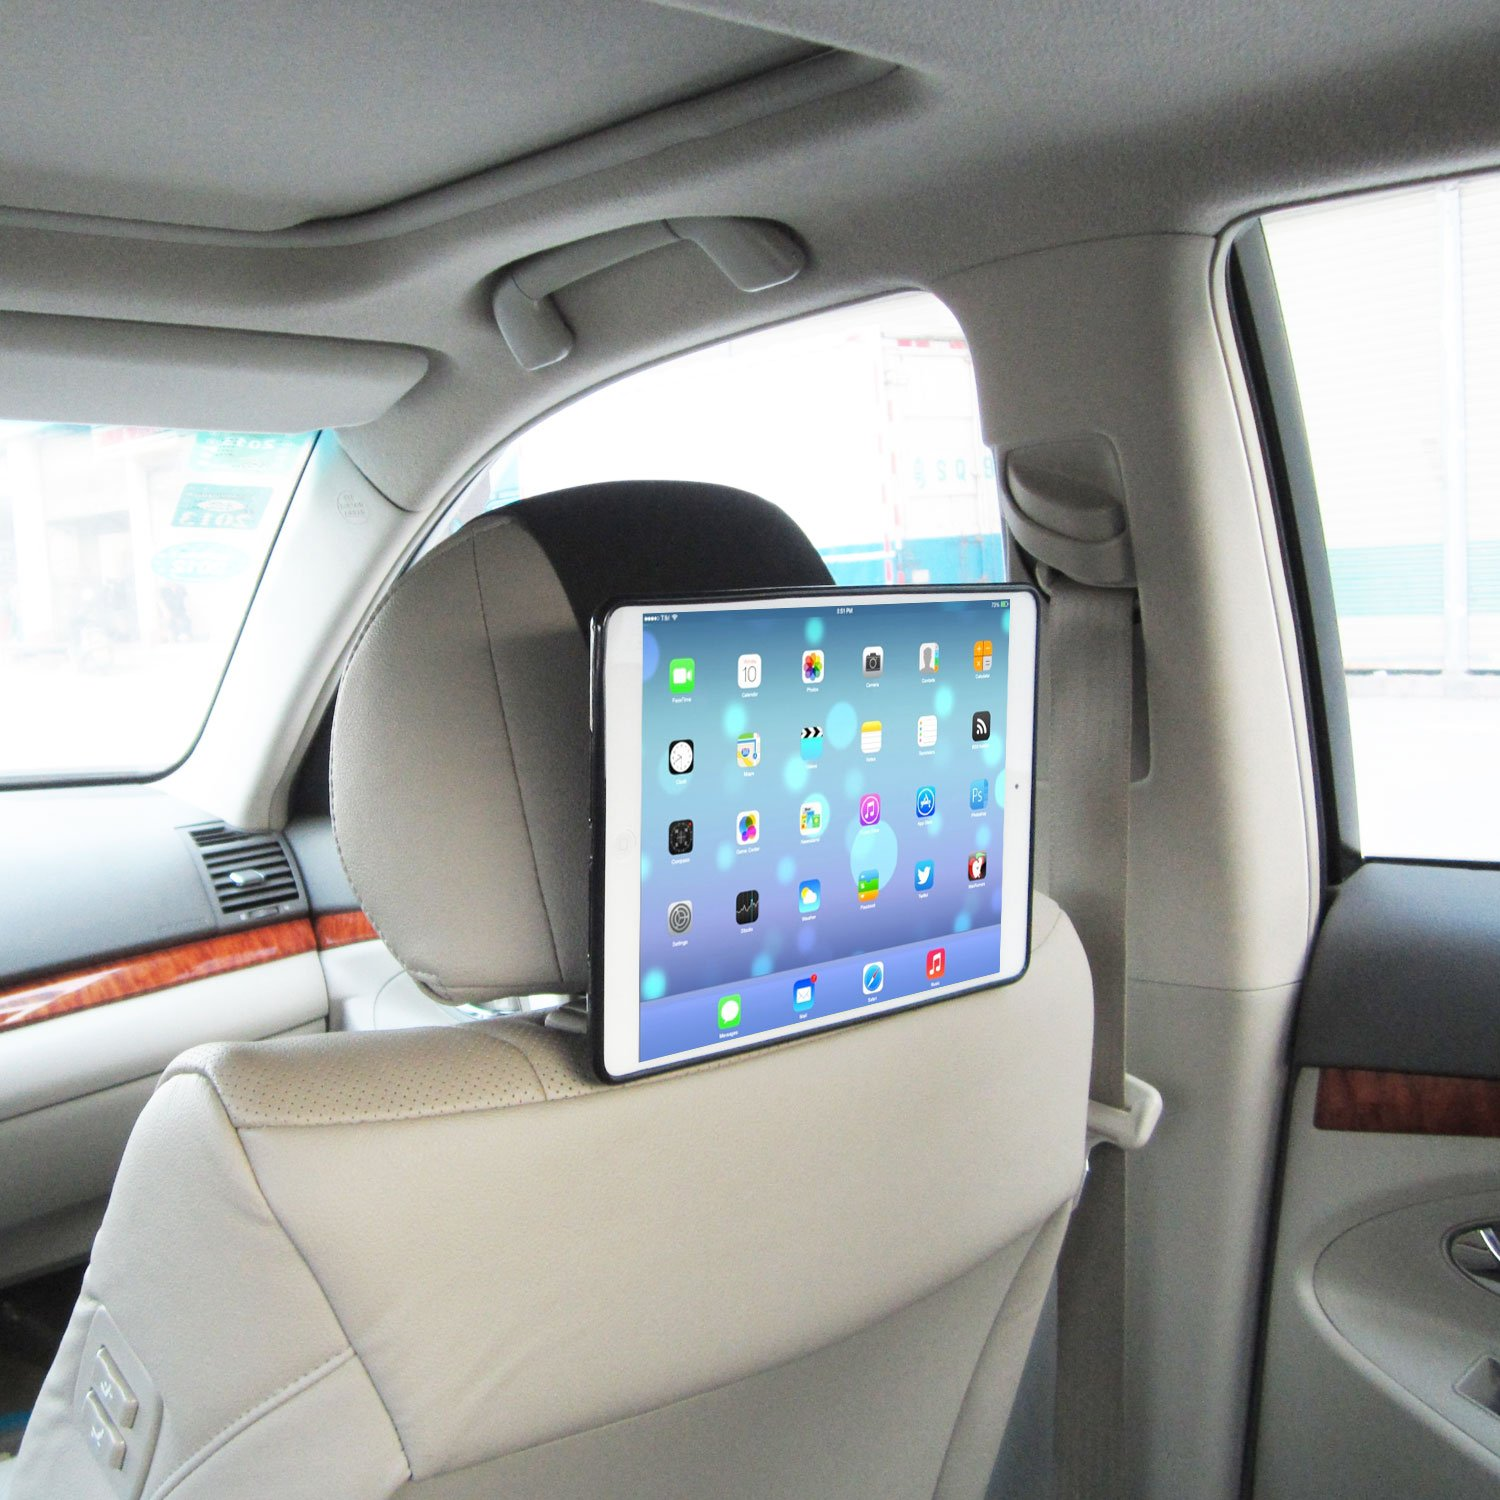 TFY Car Headrest Mount Holder for iPad Air, Fast-Attach Fast-Release Edition, Black IPAD5MOUNT_BLK